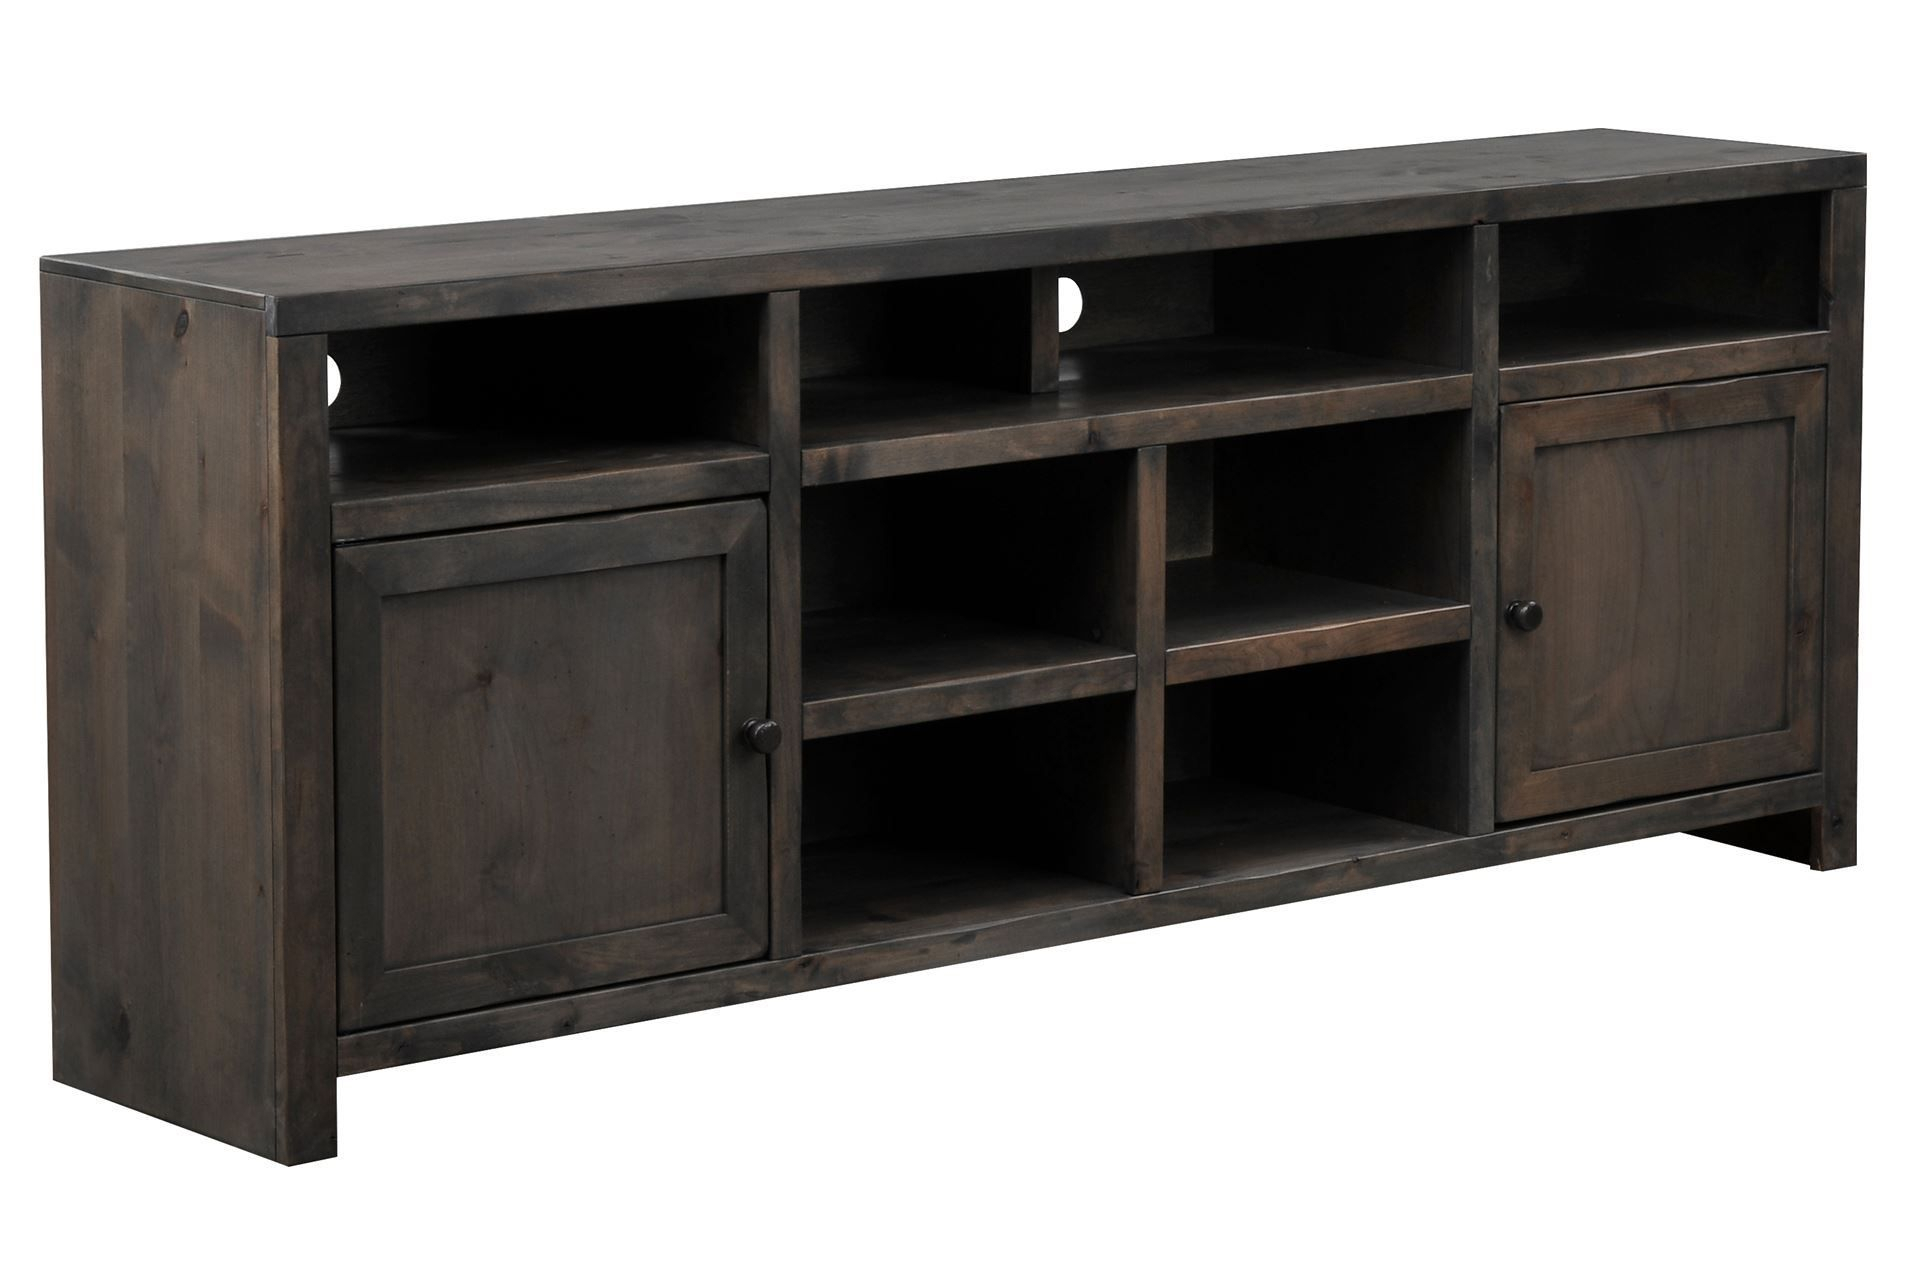 Ducar 84 Inch Tv Stand | Where The Heart Is | Pinterest | Family Inside Ducar 74 Inch Tv Stands (View 4 of 30)